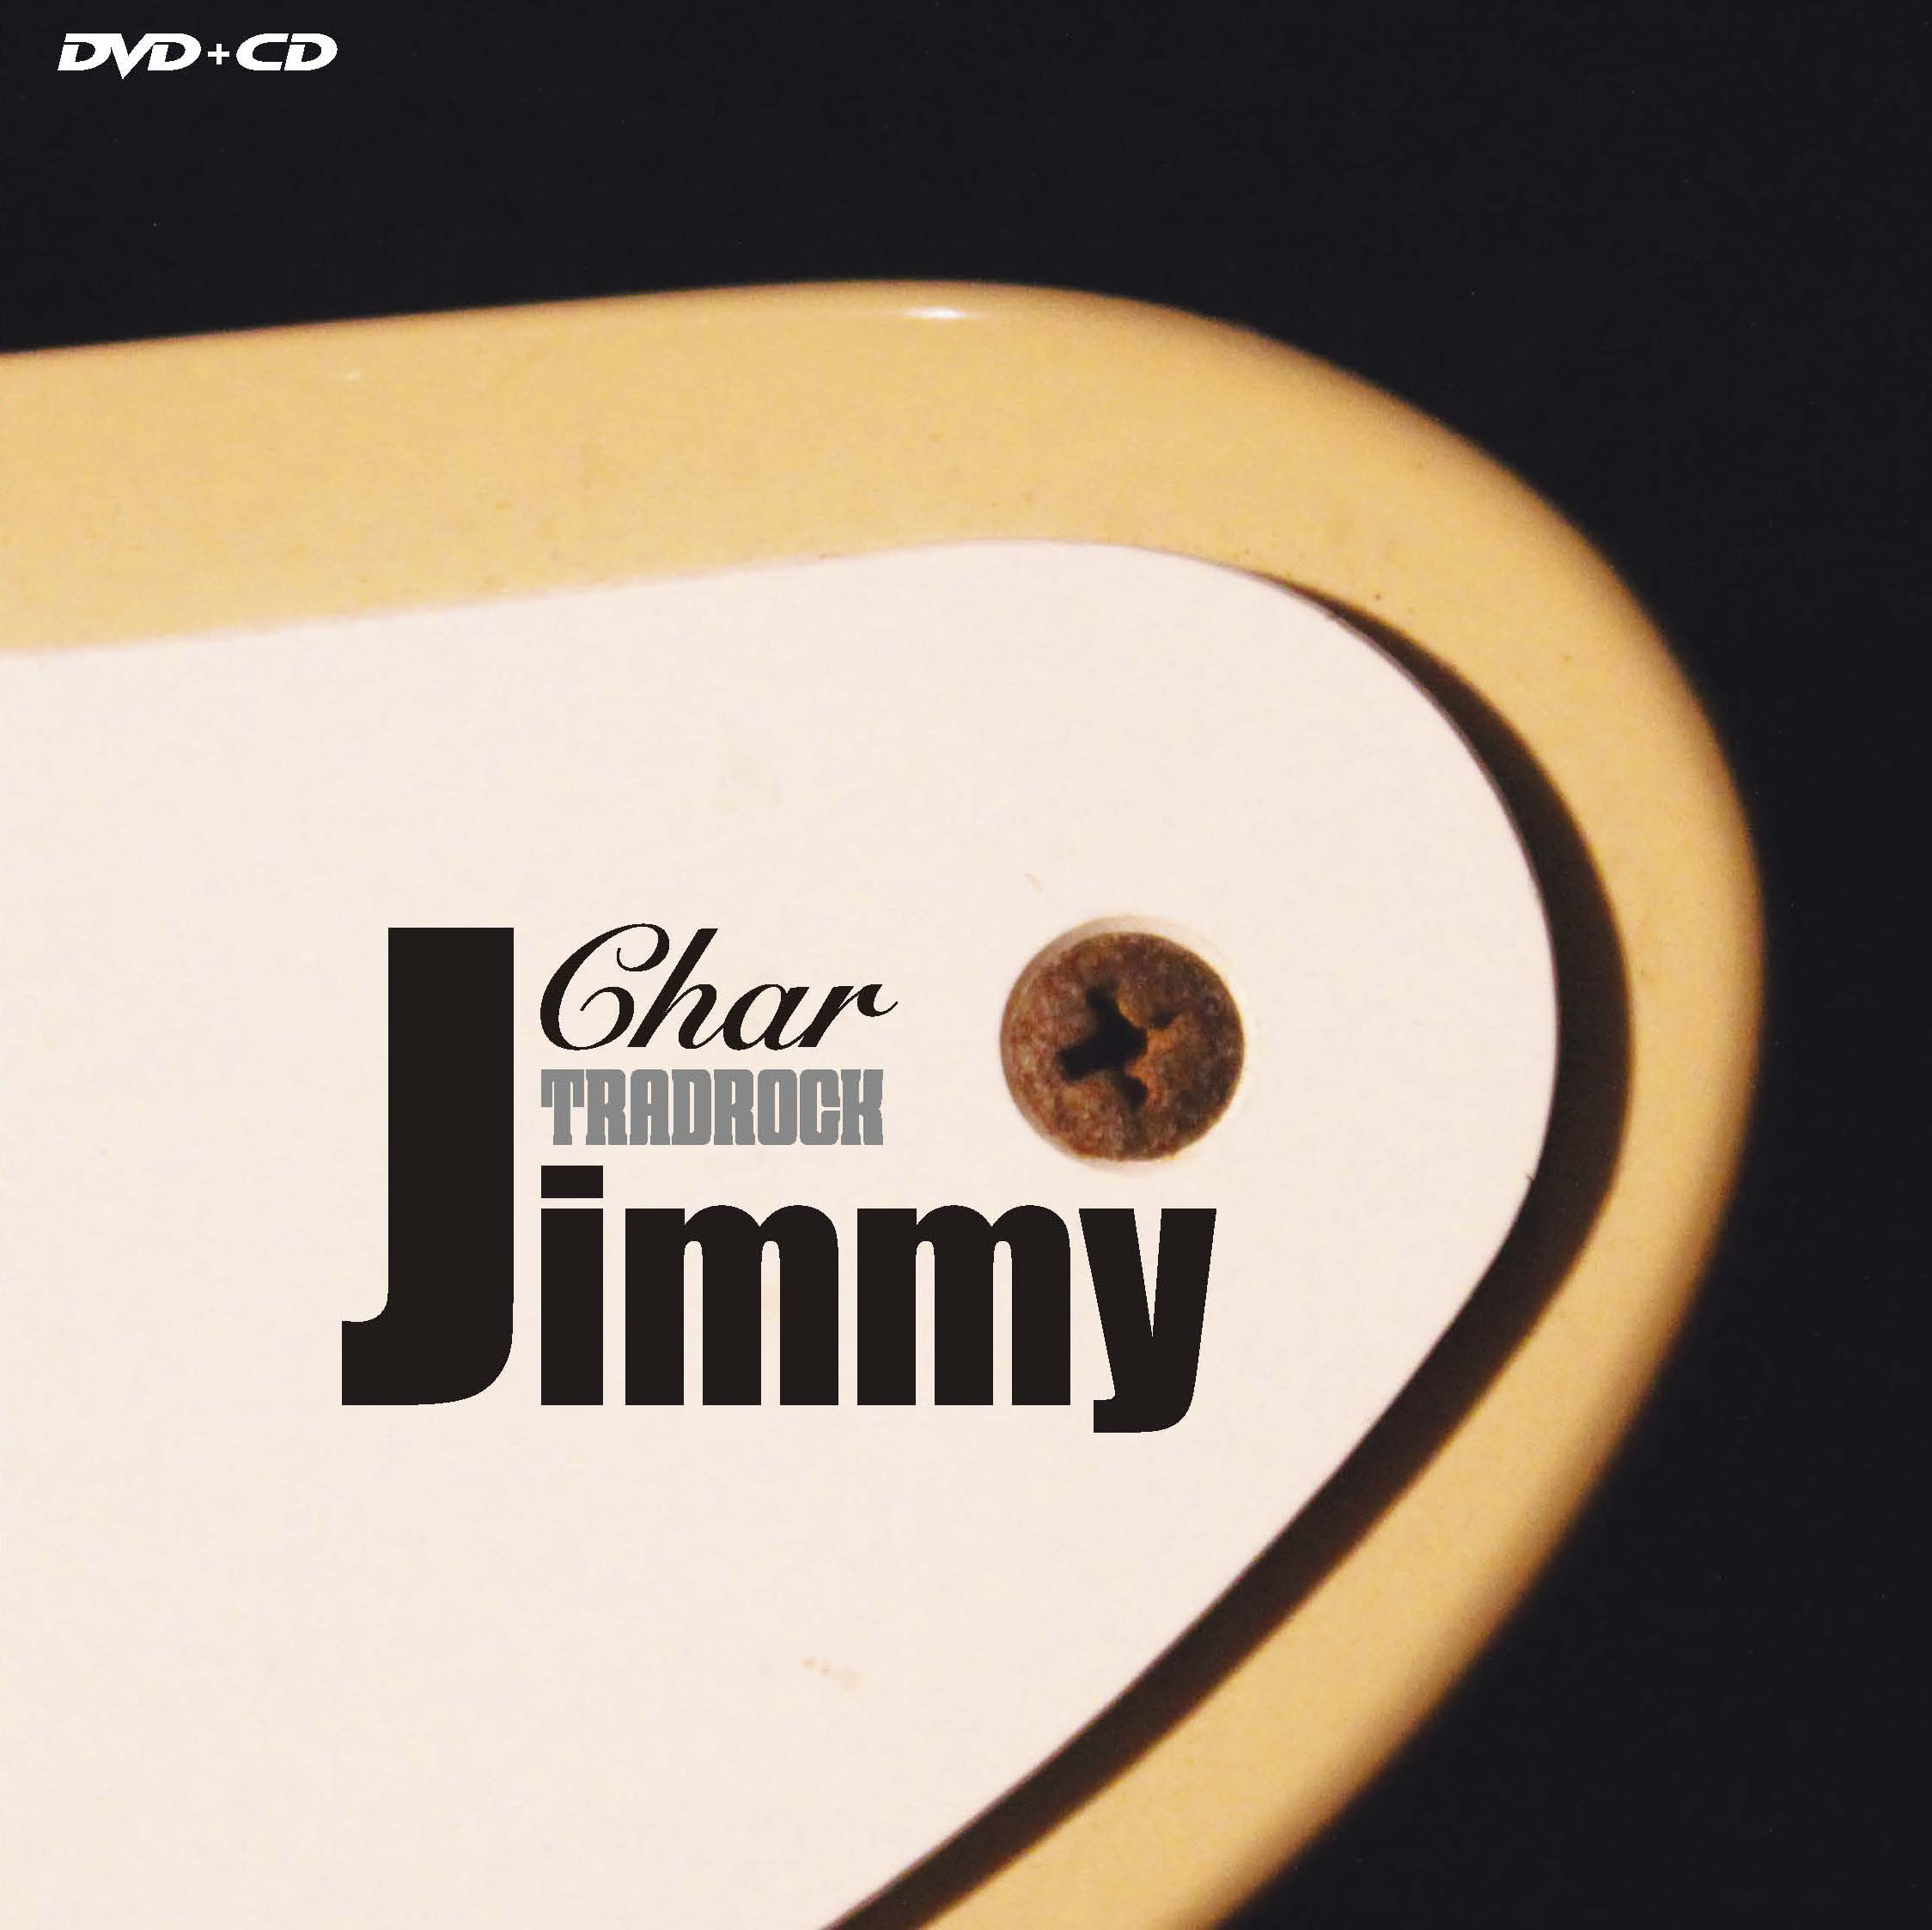 TRADROCK Jimmy by Char